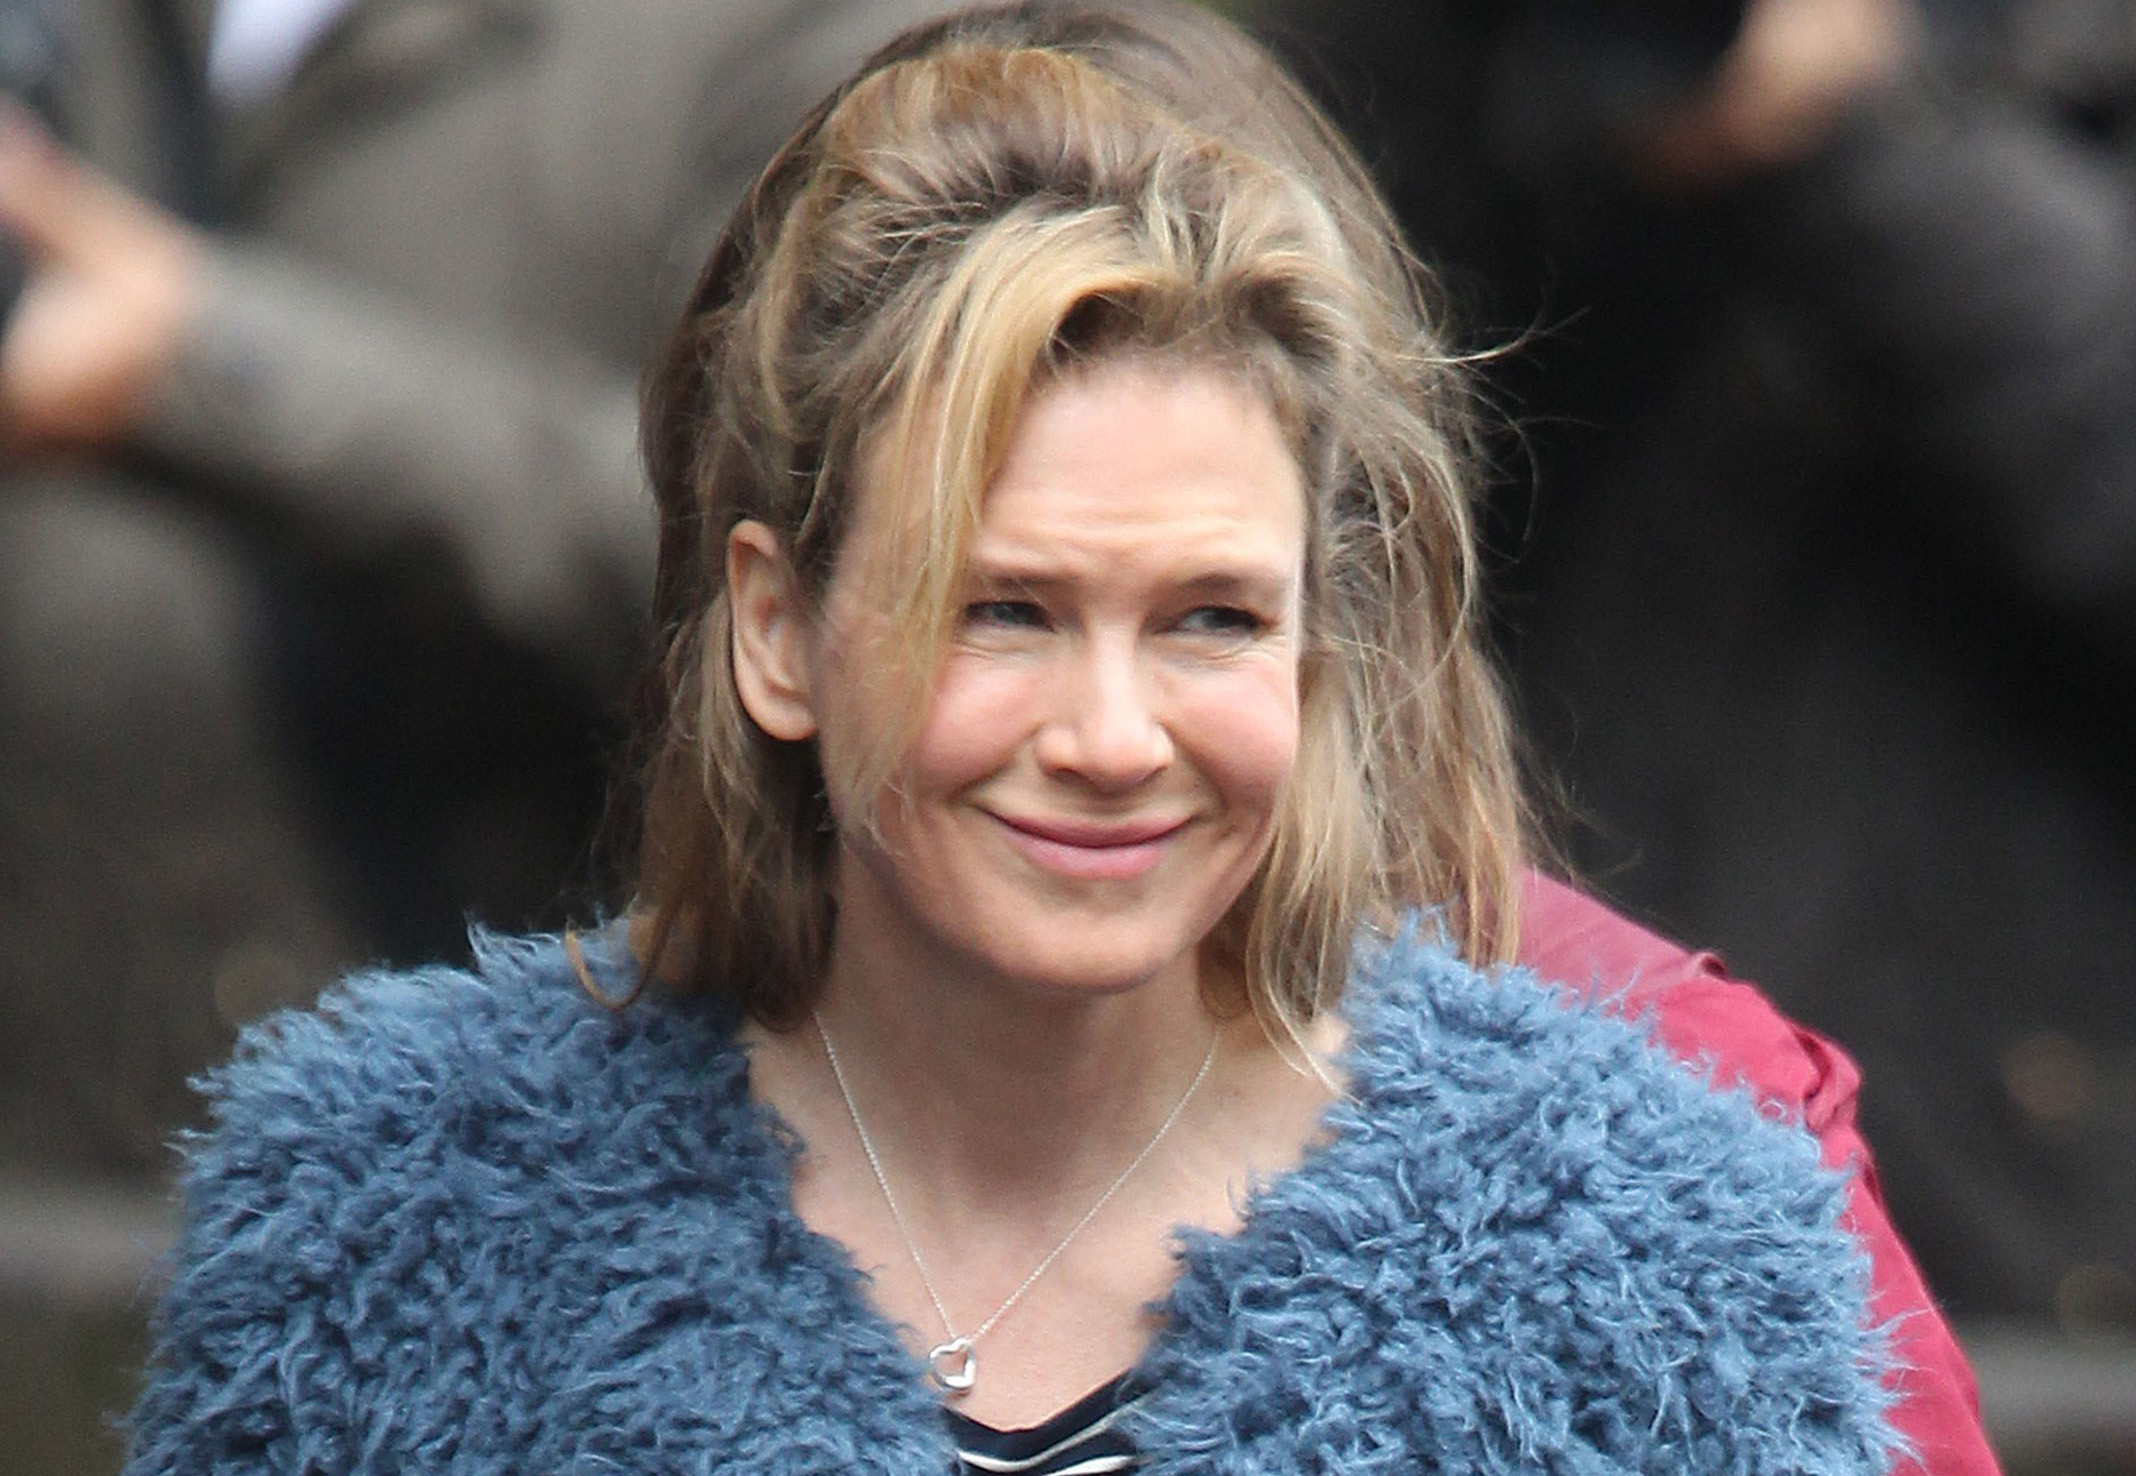 Renee Zellweger in 'Bridget Jones' Baby' – First Photo ...